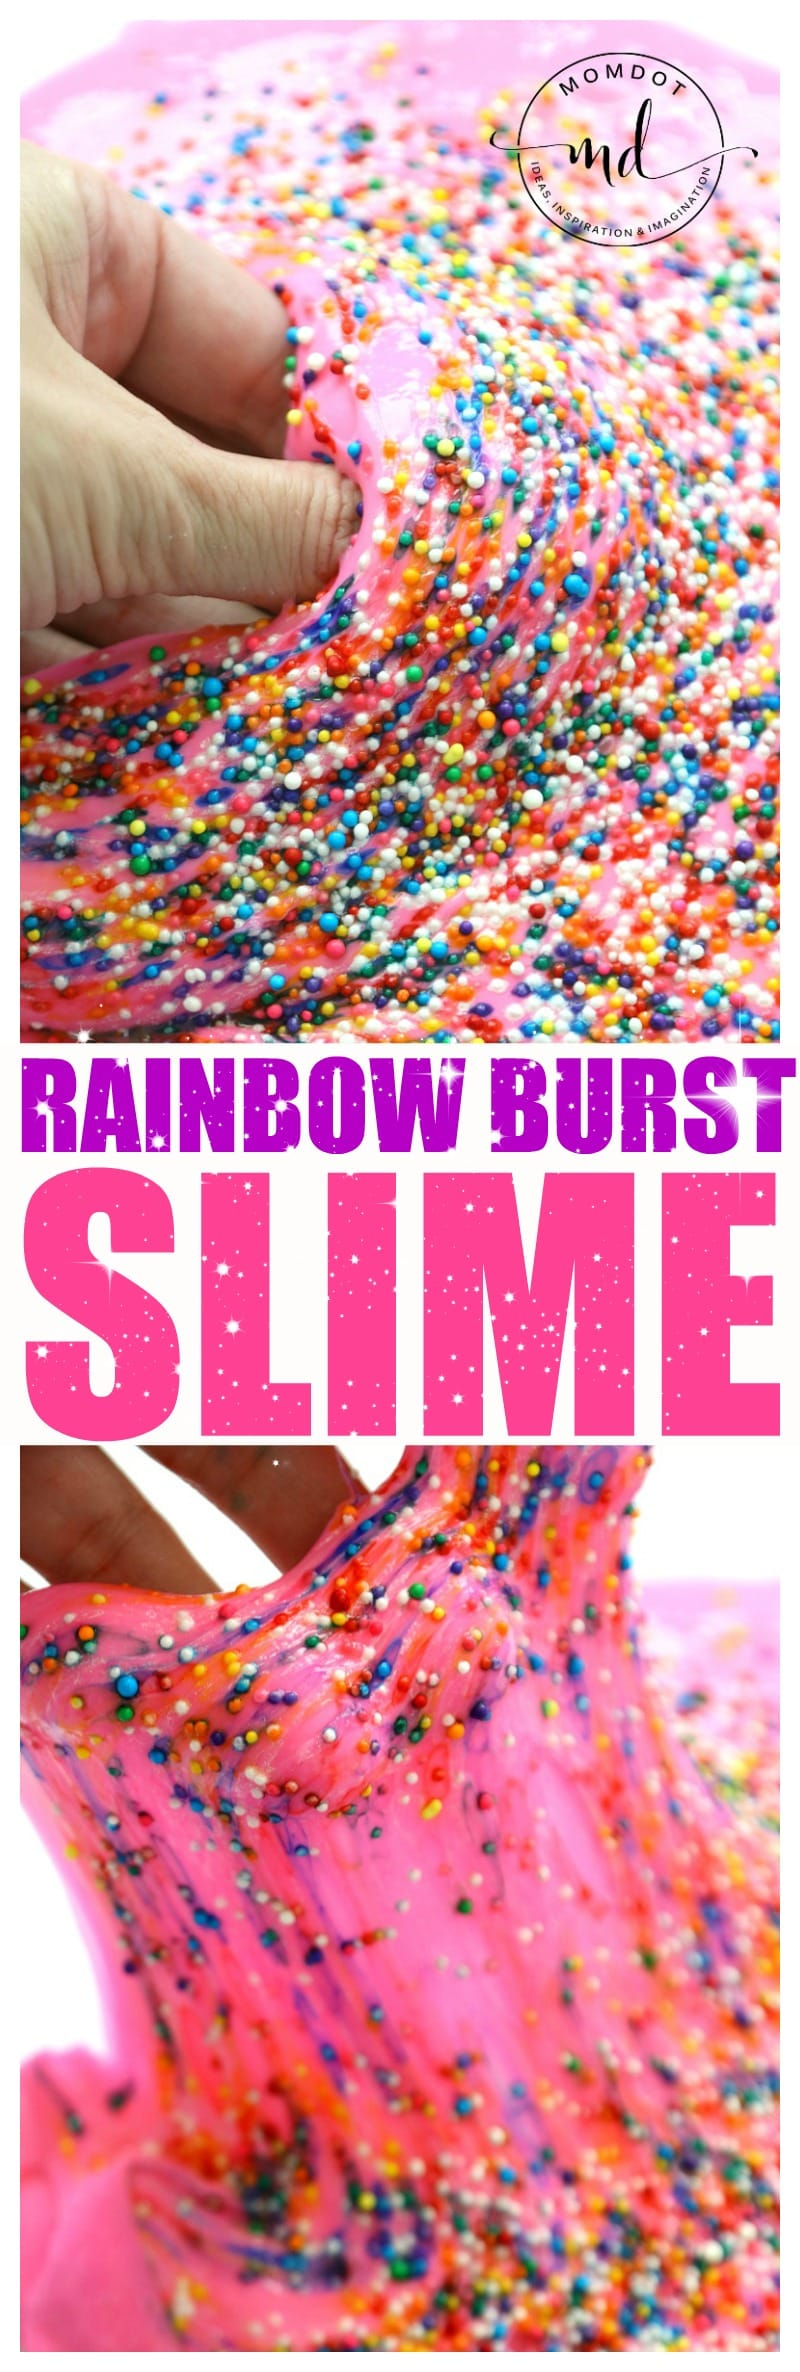 Rainbow Burst Fluffy SLIME, Rainbows will come BURSTING out of your slime with this Fluffy Slime DIY